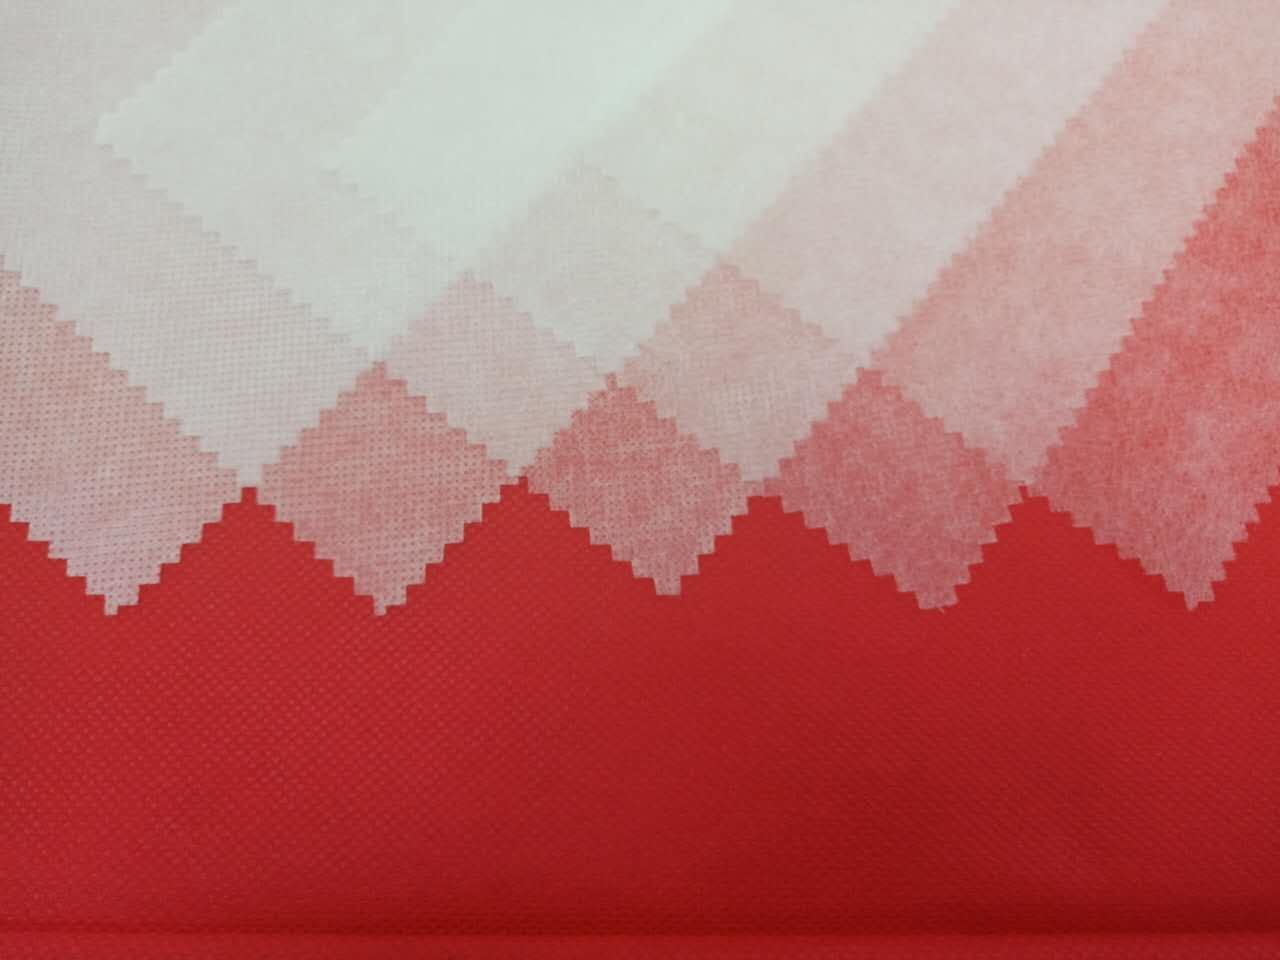 Nonwoven Fabrics With Fire Retardant Special Treatment For Furniture